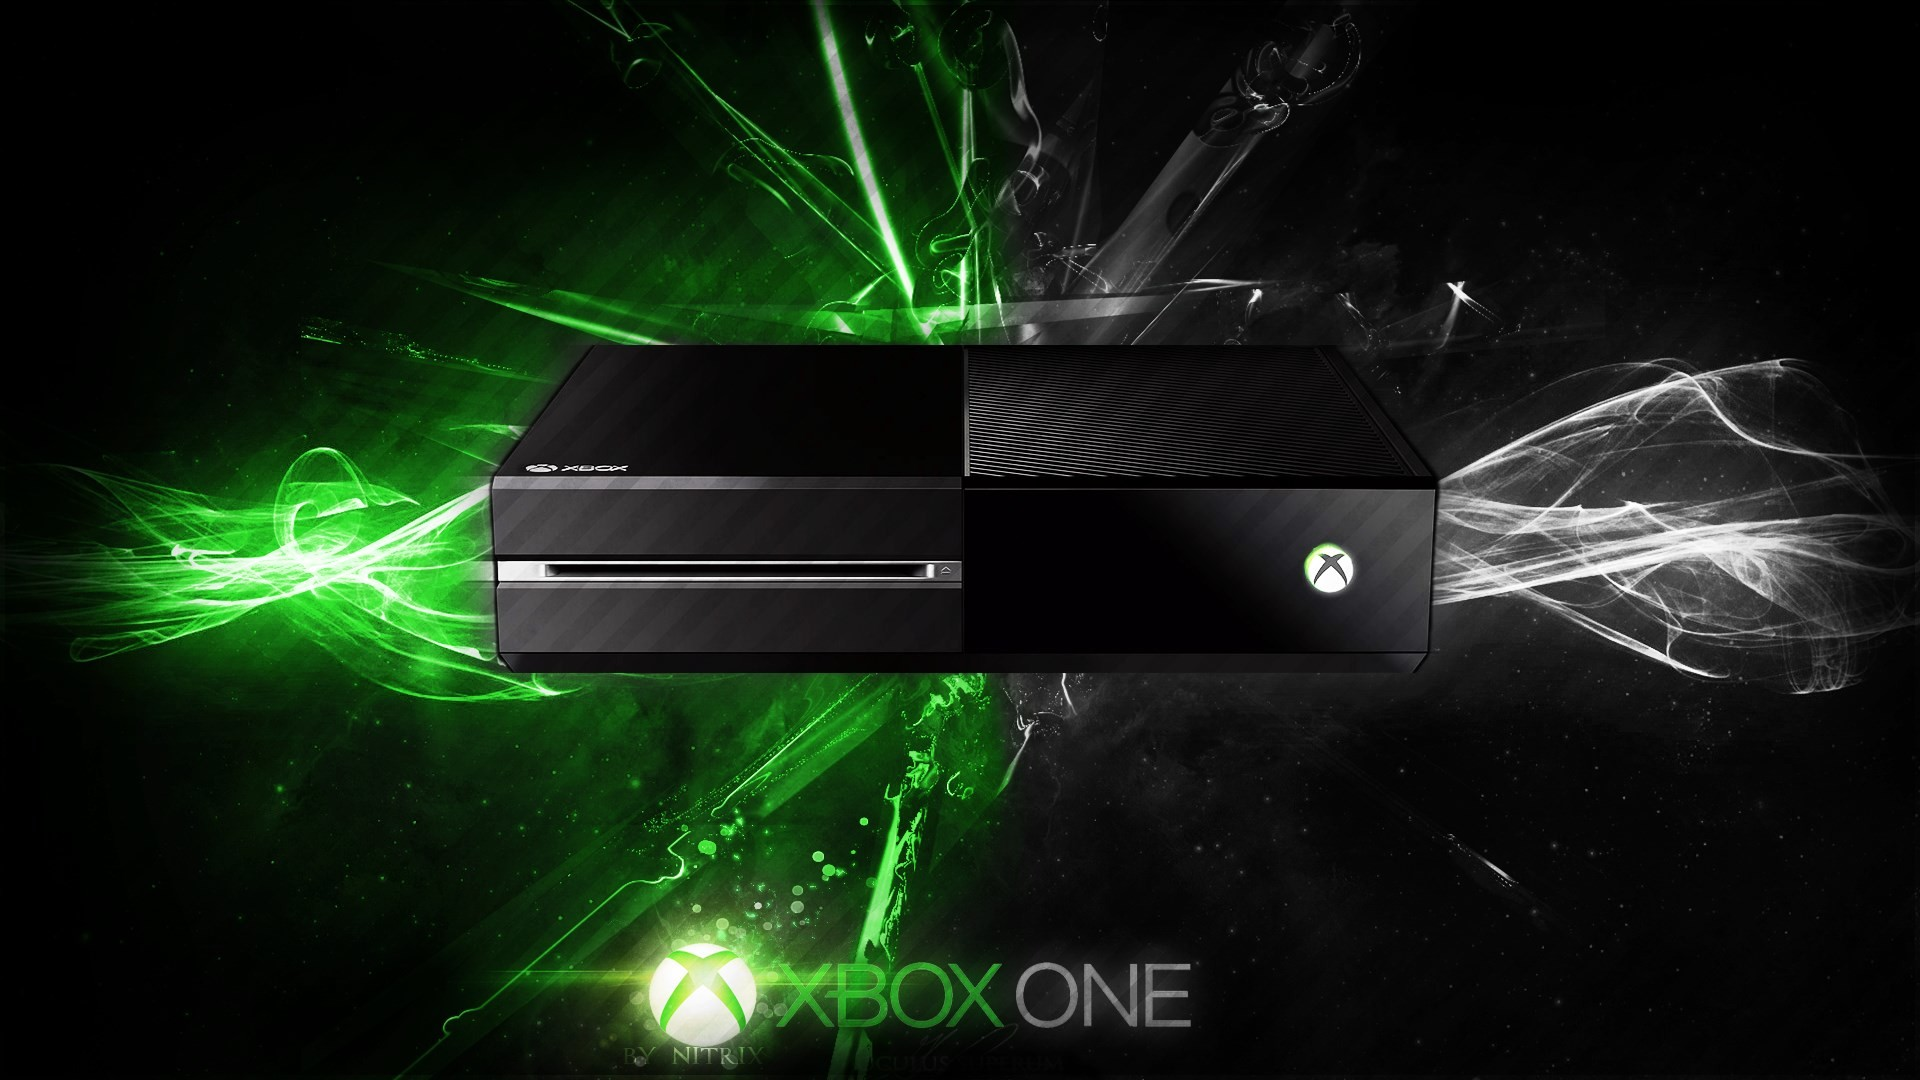 1920x1080 XBOX ONE Video Game System Microsoft Wallpaper Background